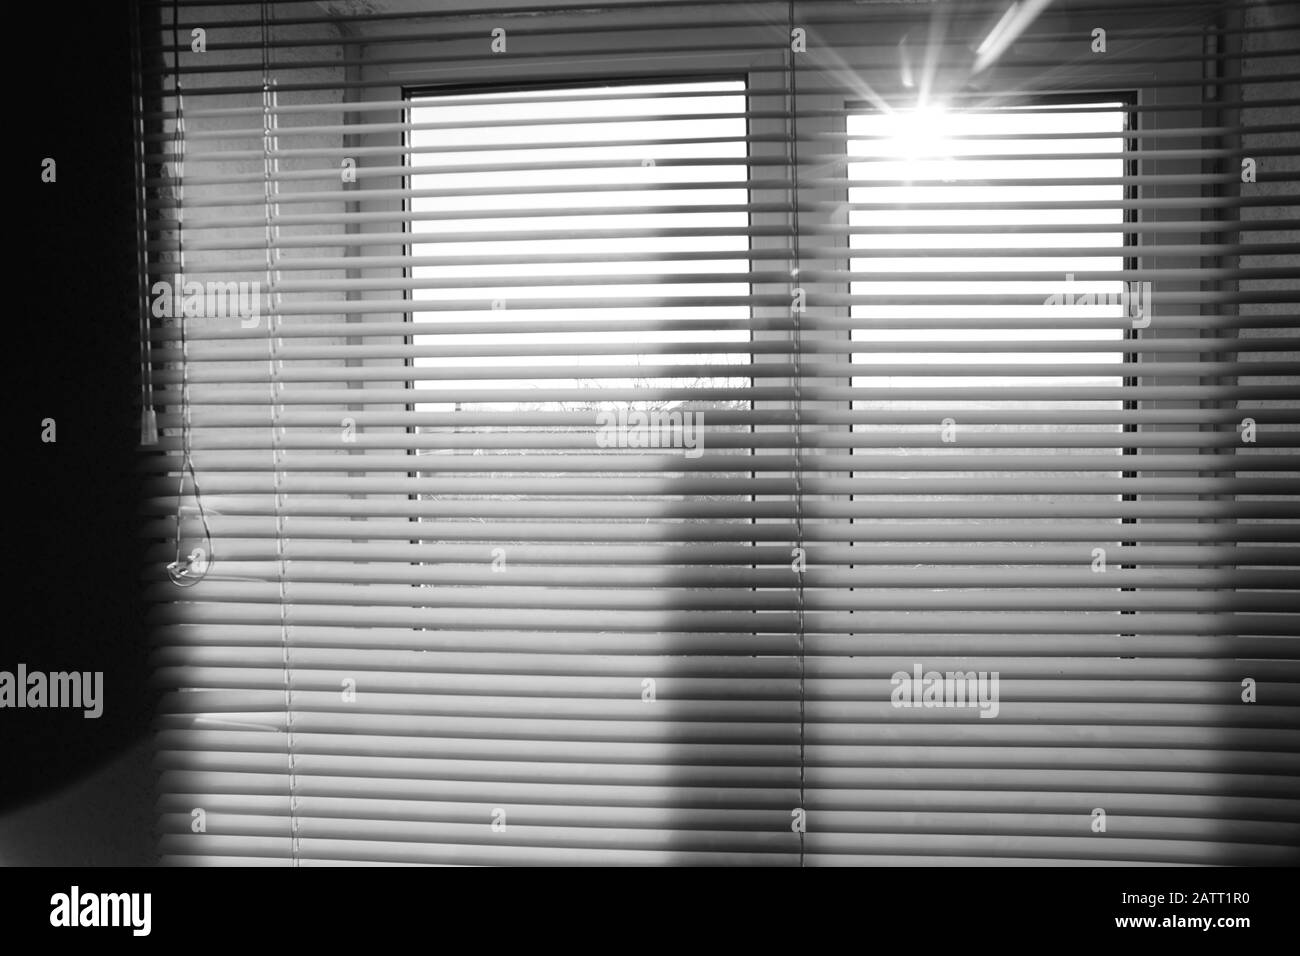 Sun Shine Outdoor Window With Blinds In The Room Stock Photo Alamy